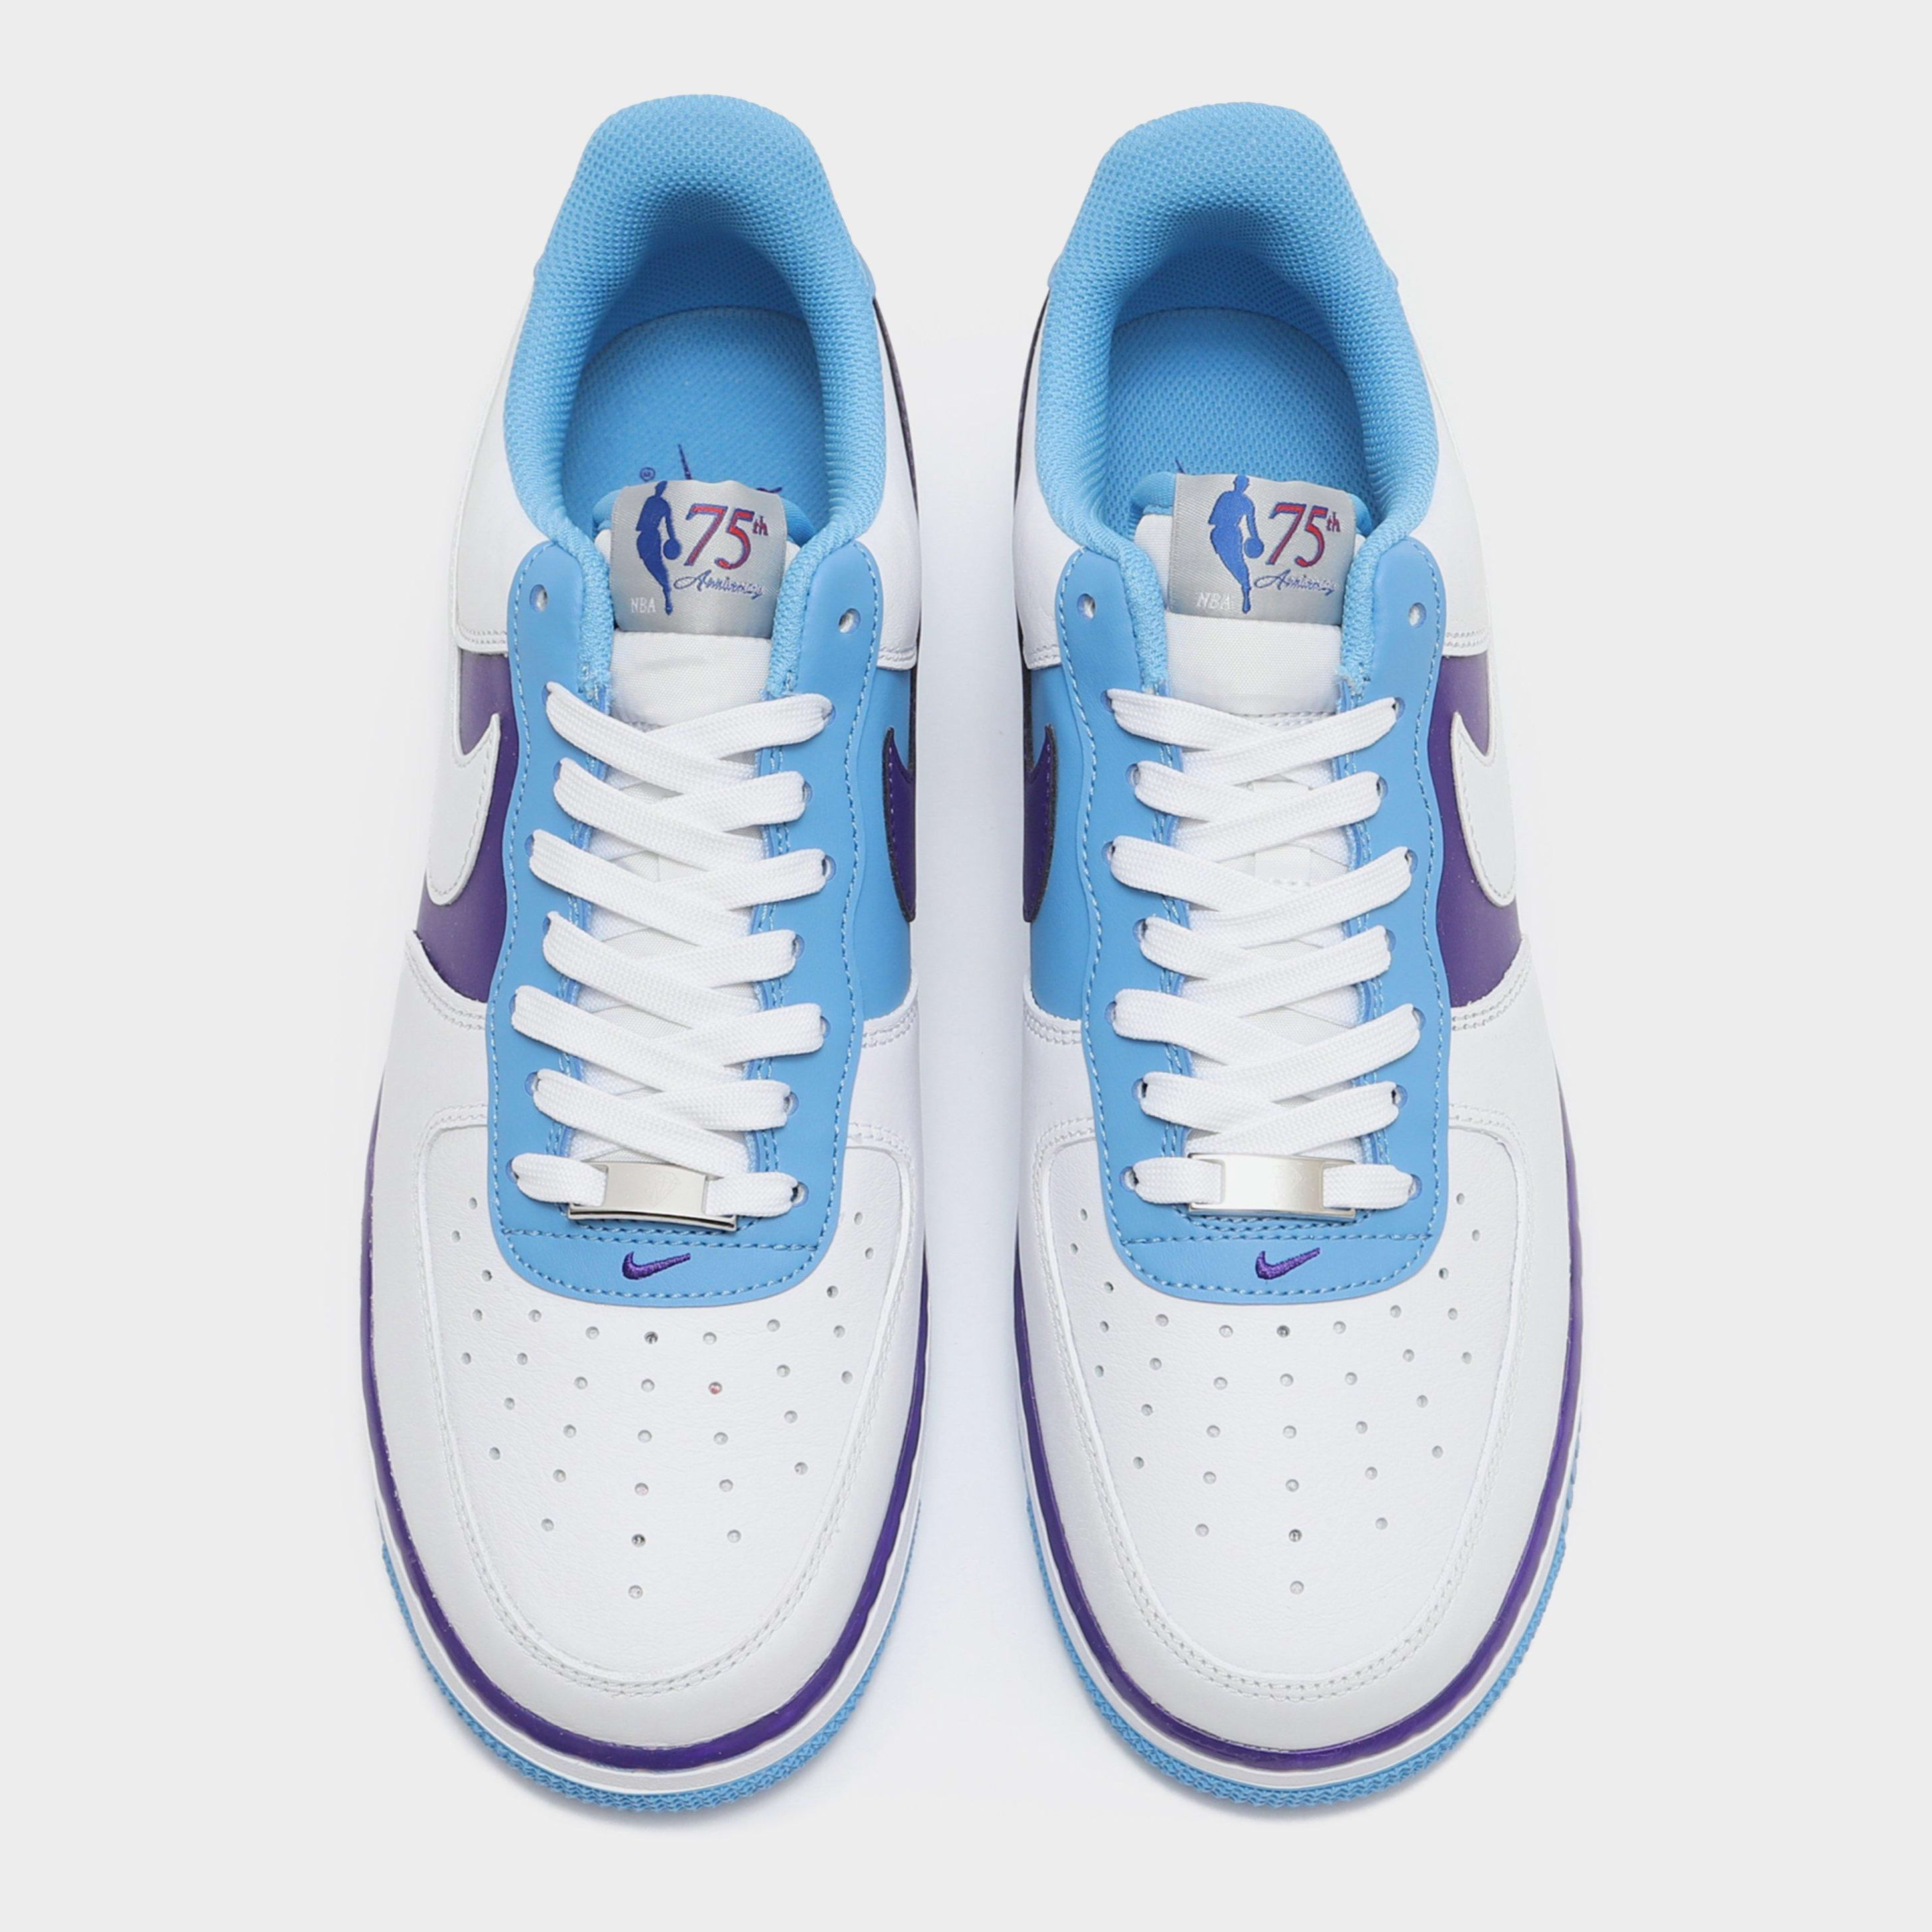 Nike Air Force 1 Low Lakers MPLS Release Date Top